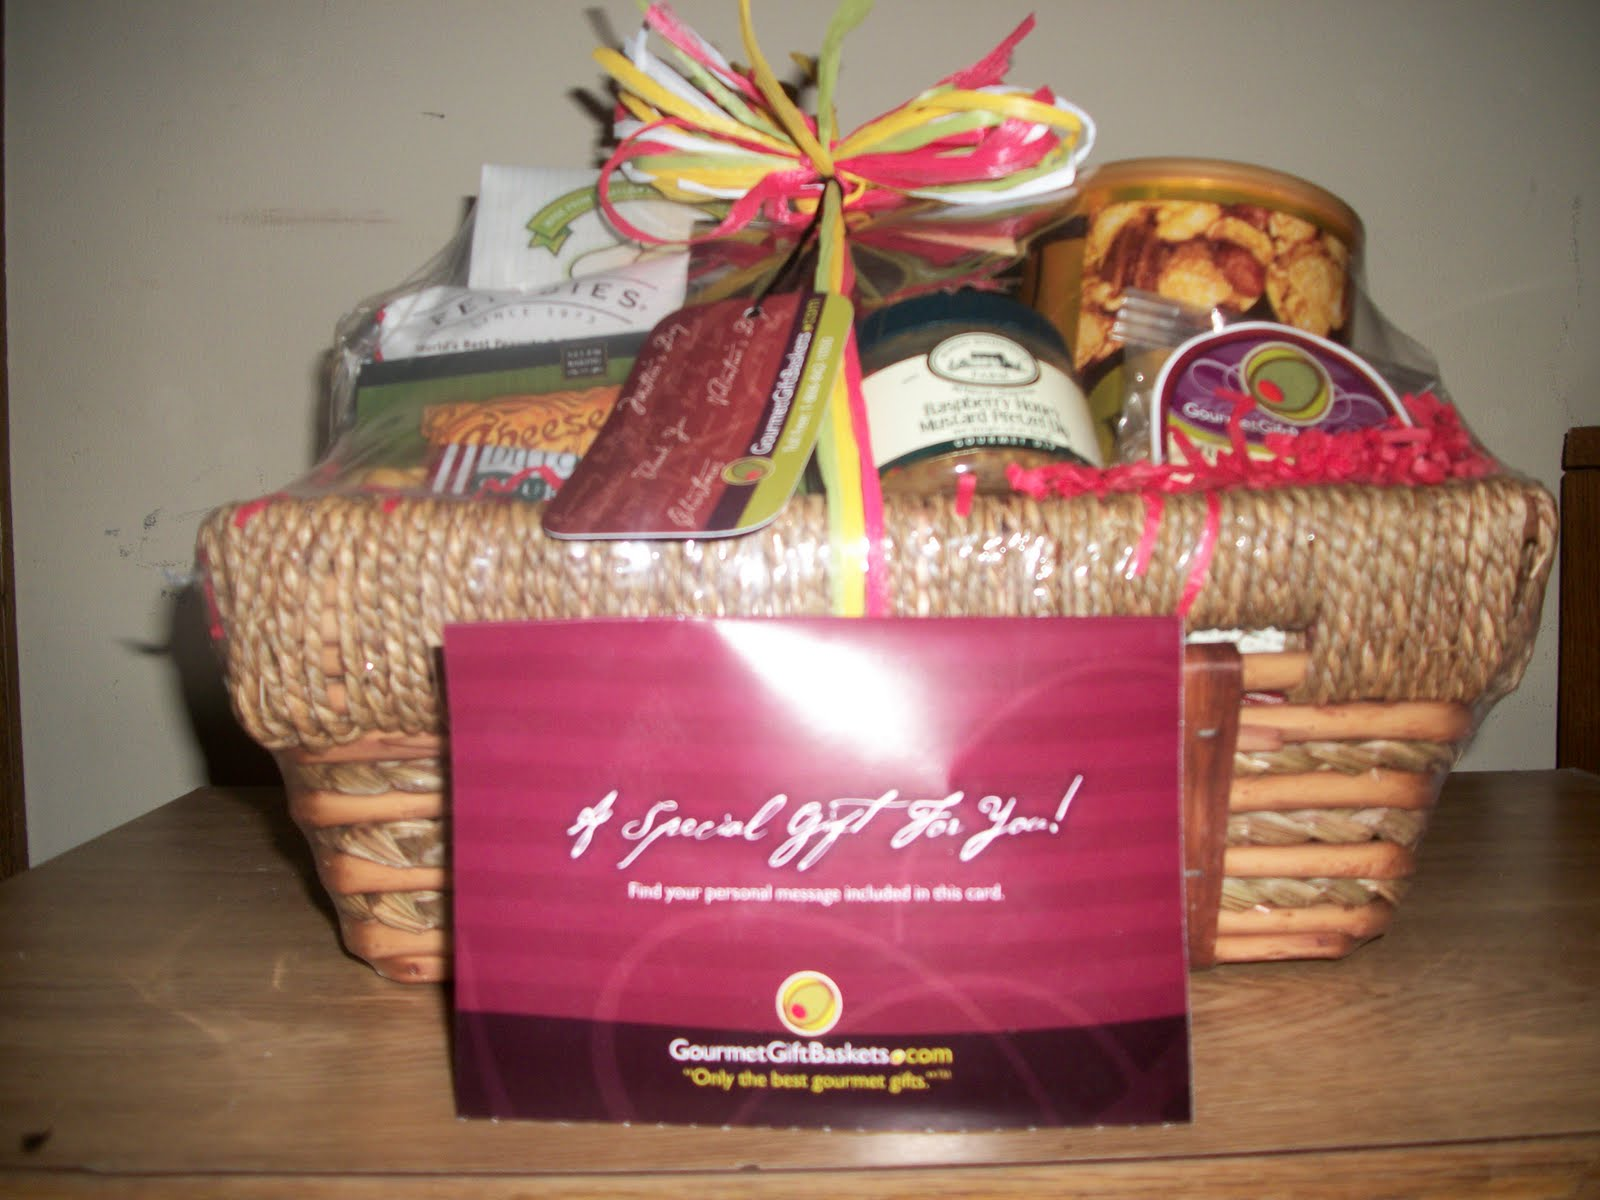 Once Upon A Review: Gourmet Gift Baskets Review&Giveaway! - Ends 9/12